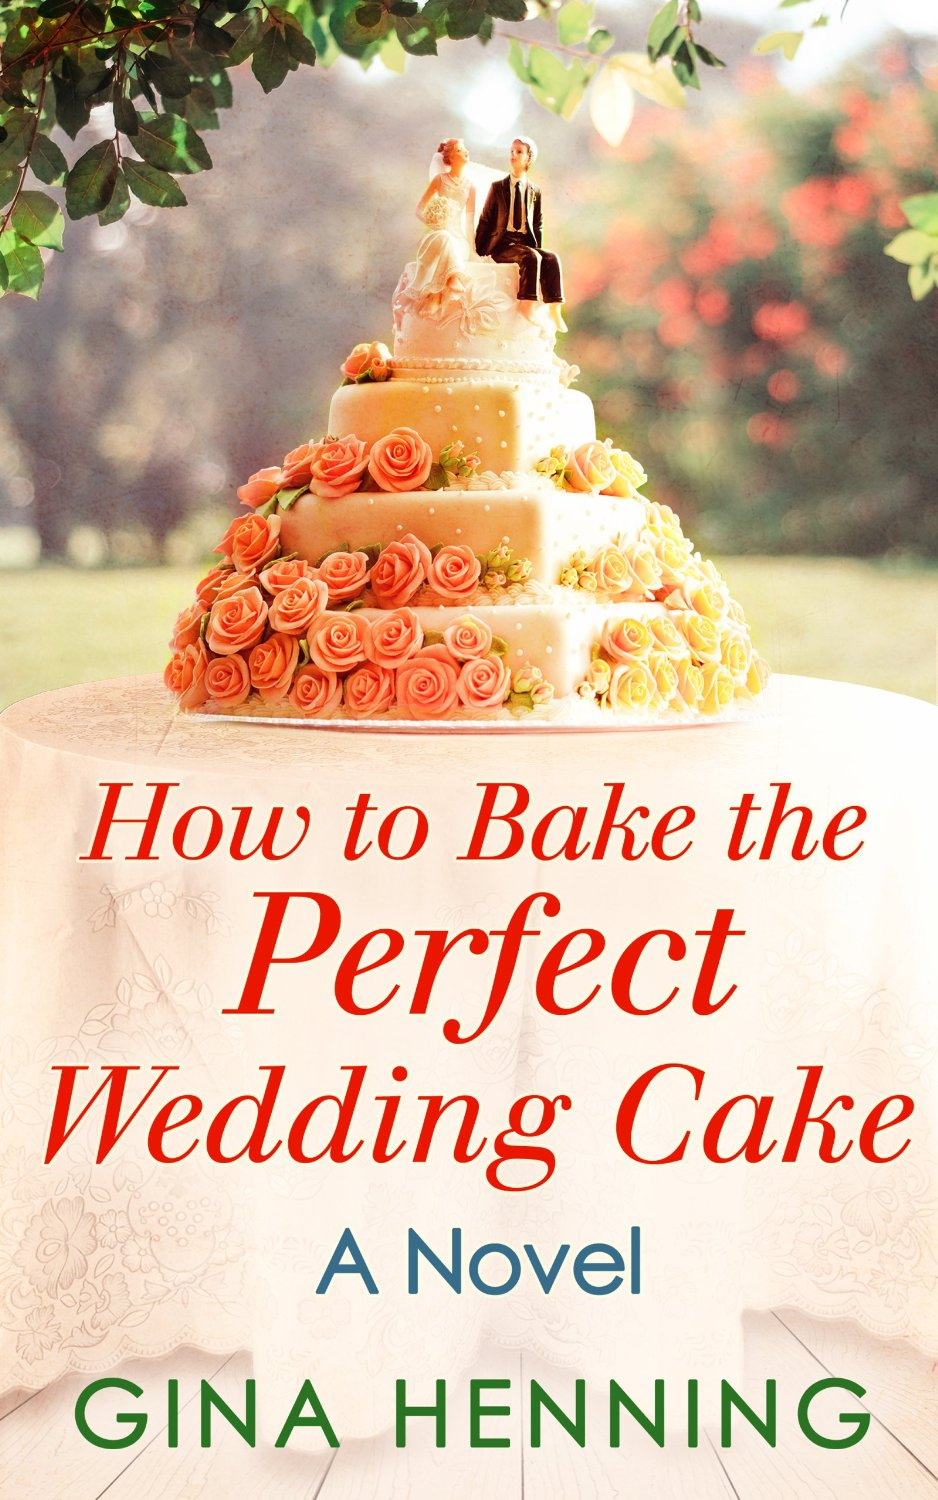 new release blitz how to bake the perfect wedding cake living life with joy. Black Bedroom Furniture Sets. Home Design Ideas